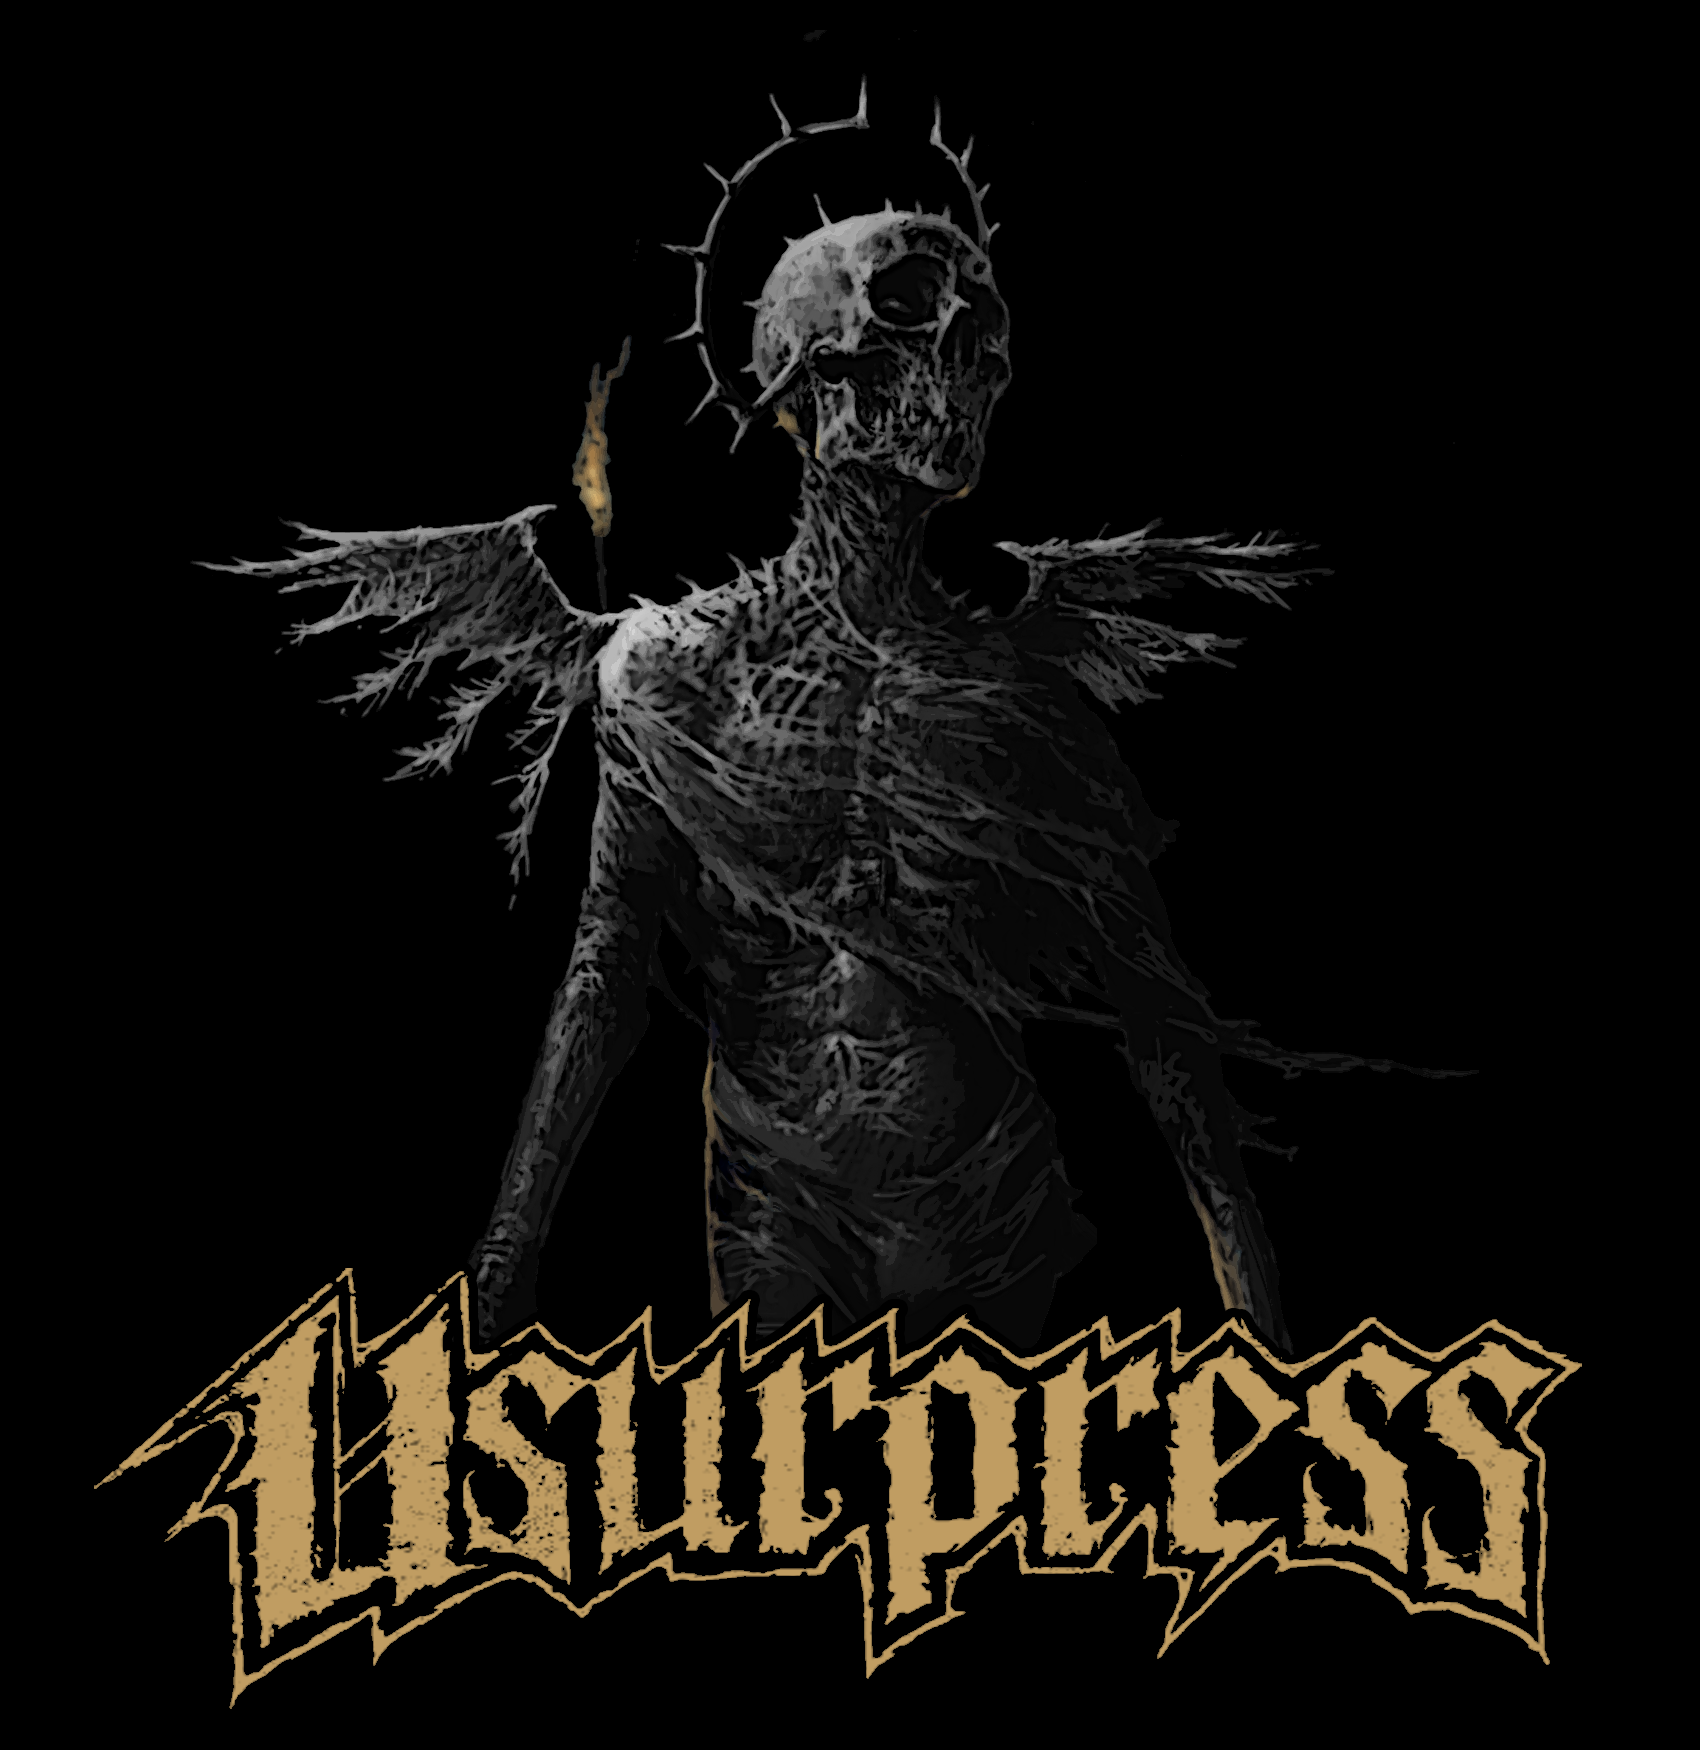 Usurpress - Ordained (T-Shirt)